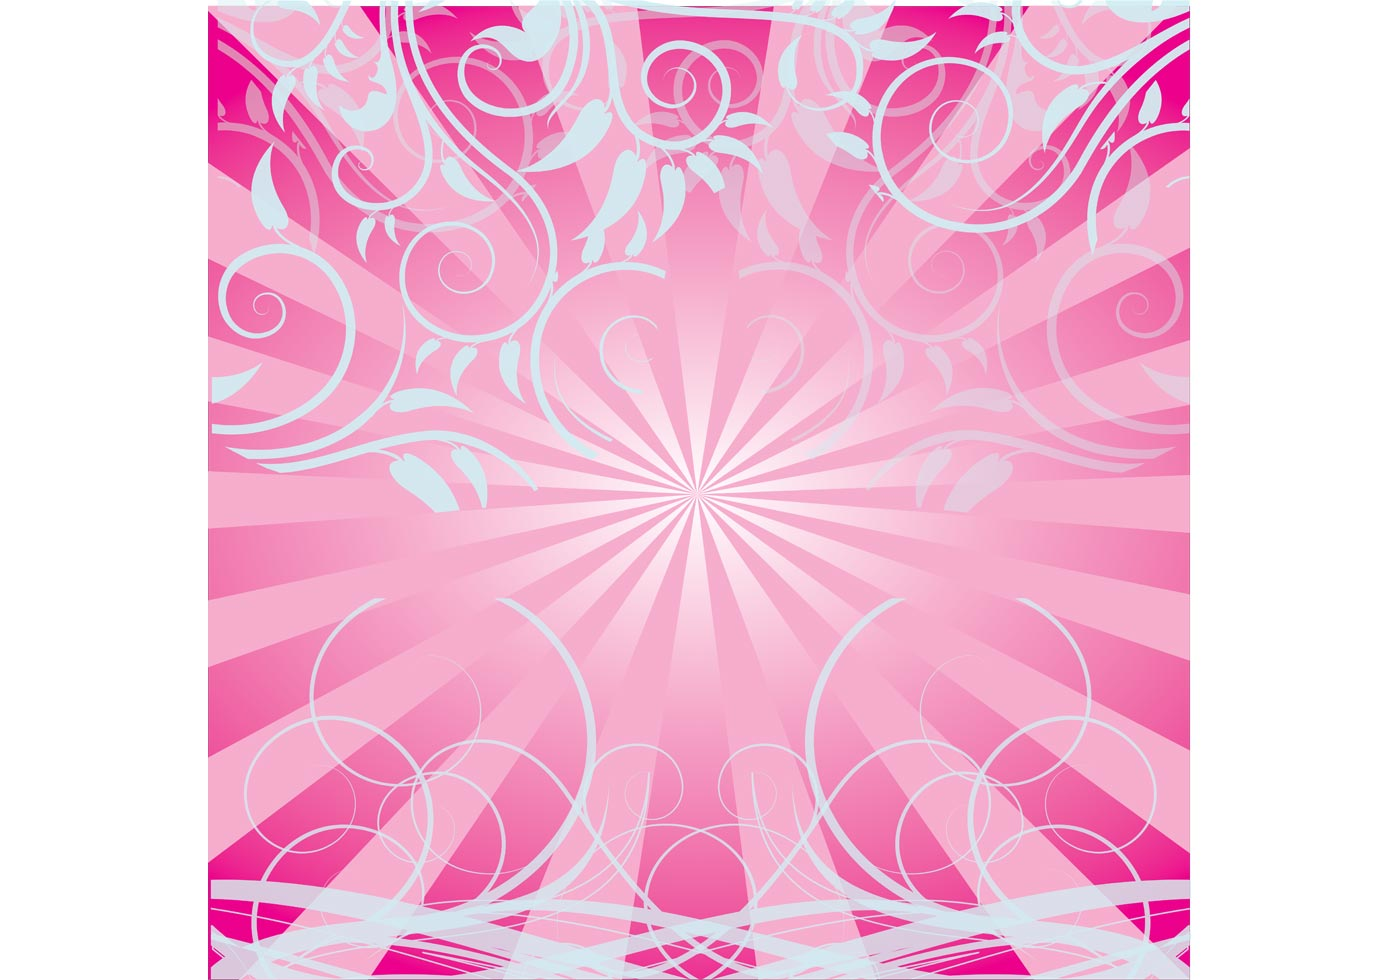 Free Pink Swirls Background - Download Free Vector Art ...Pink And Black Background Vector Designs